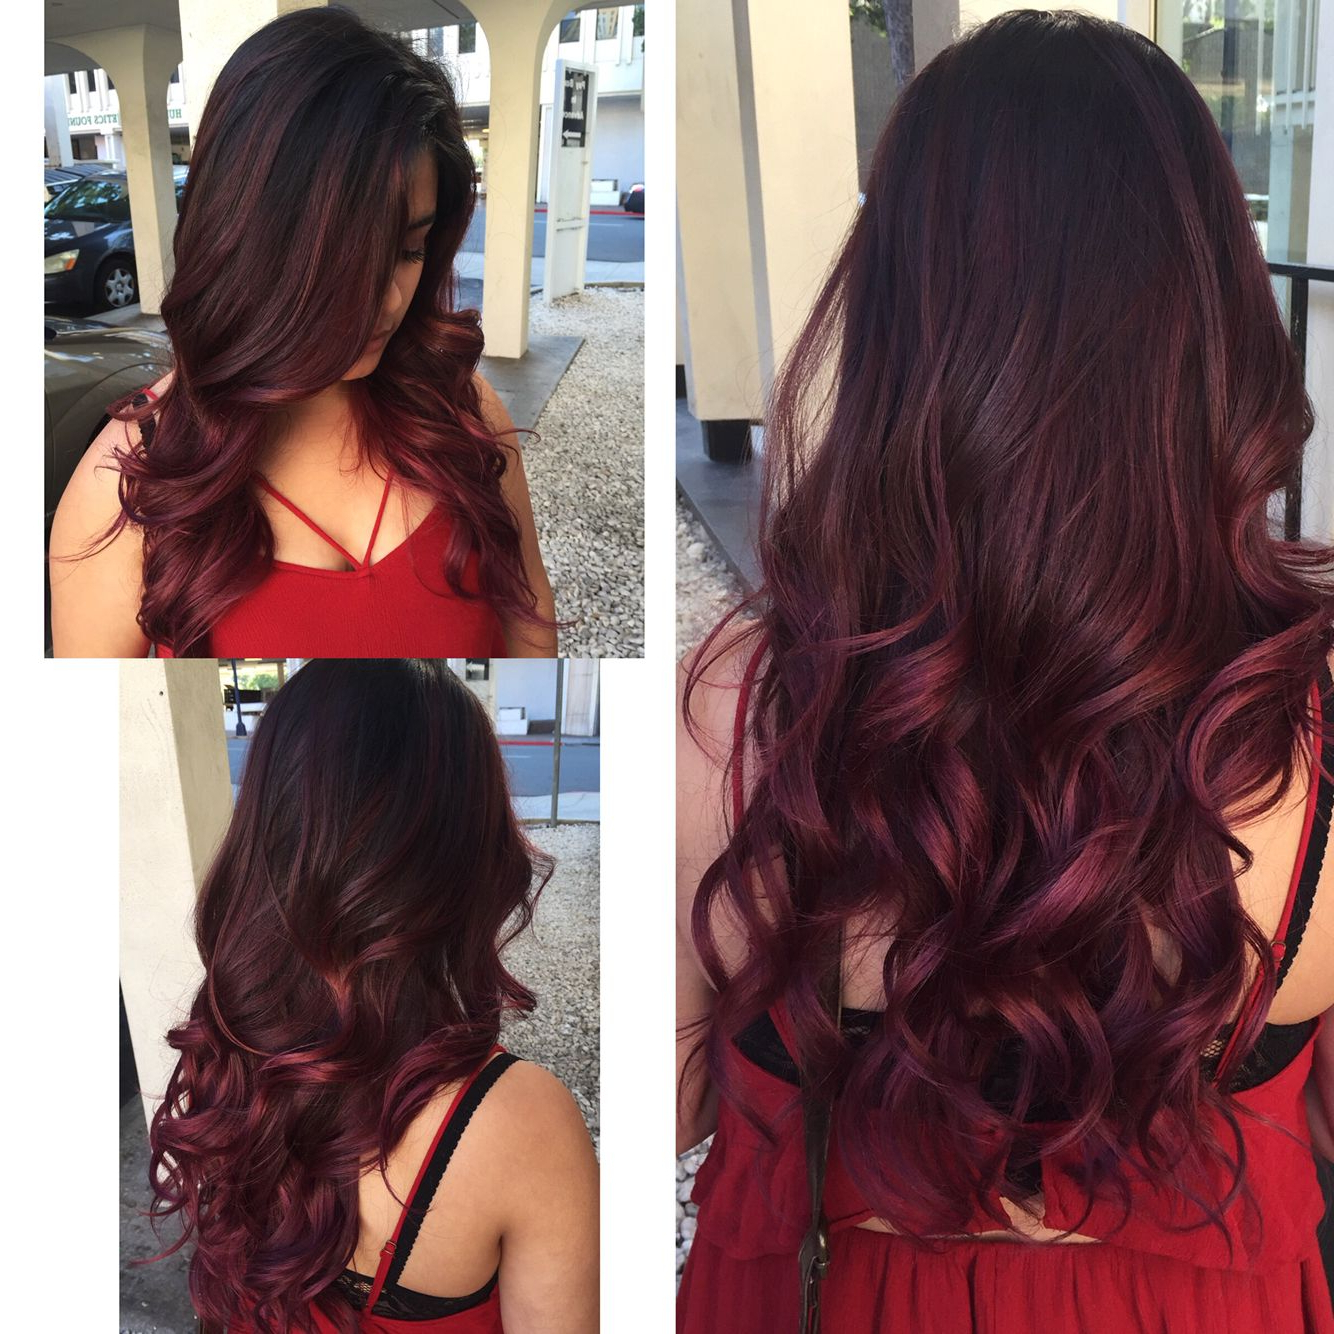 Red/violet Balayage! #hairbytaylorsteingold   Balayage With Bright Red Balayage On Short Hairstyles (View 16 of 20)